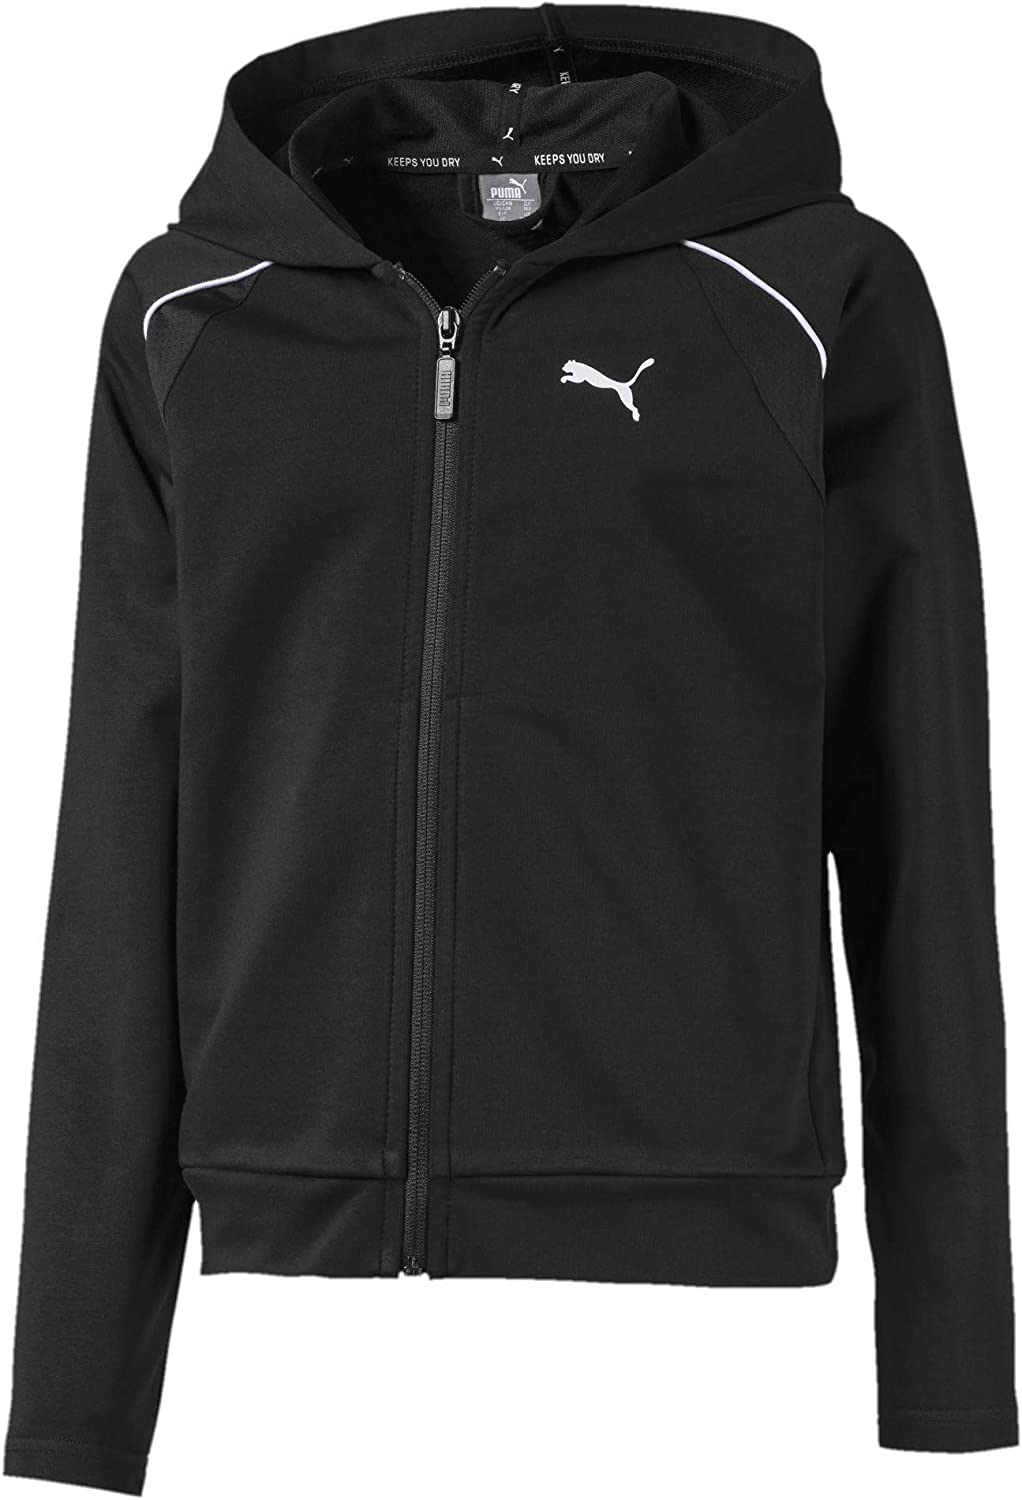 PUMA Mädchen Modern Sports Jacket G Trainingsjacke